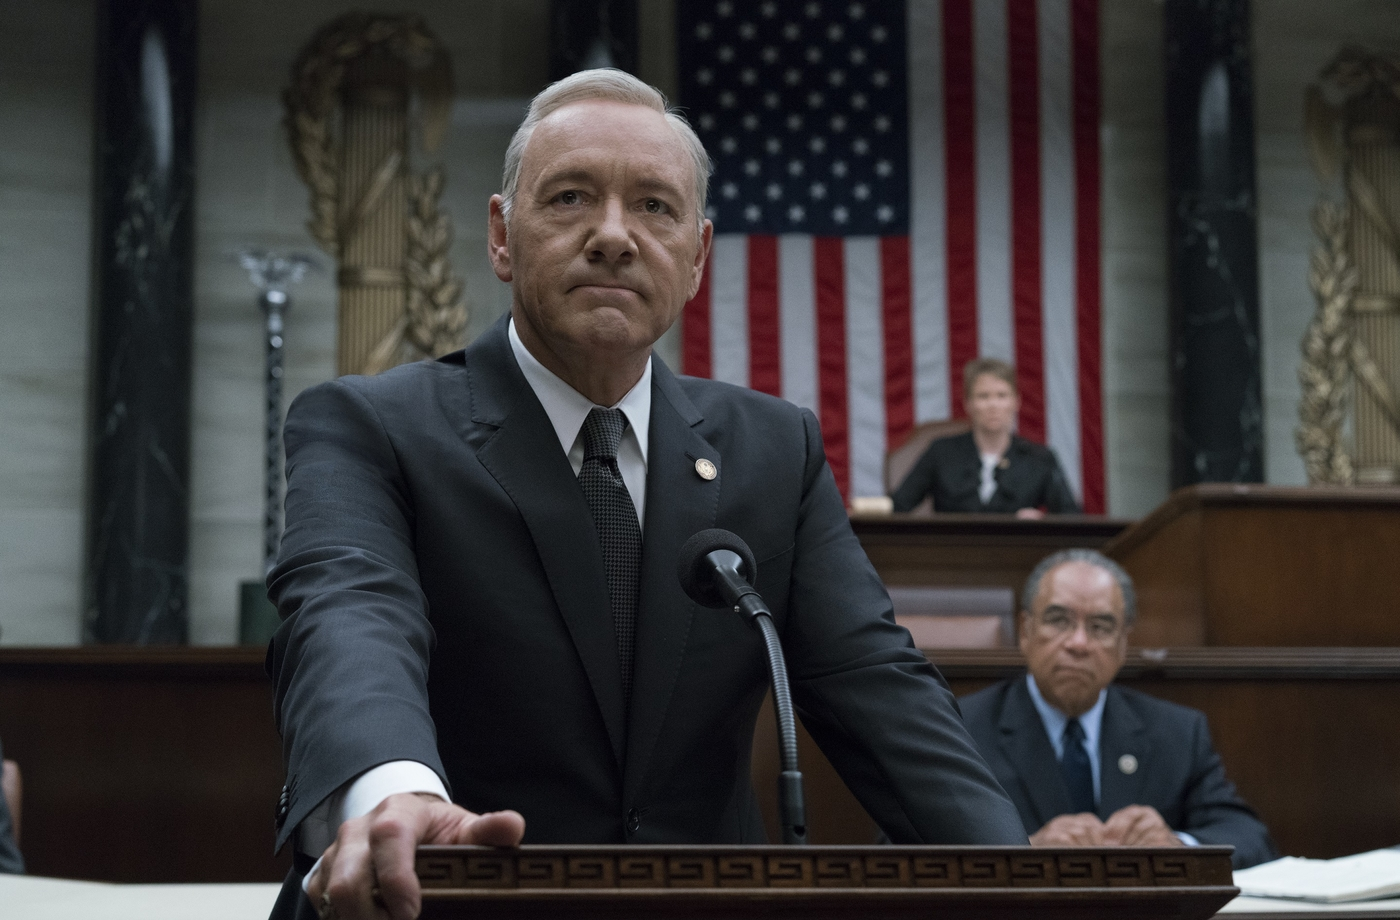 House of Cards S5 Frank Underwood.jpg